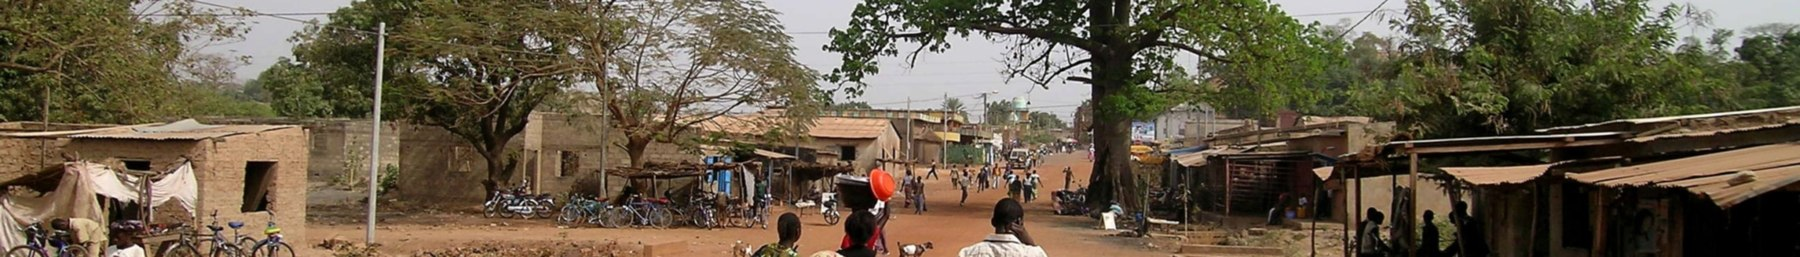 The main street of Gaoua.